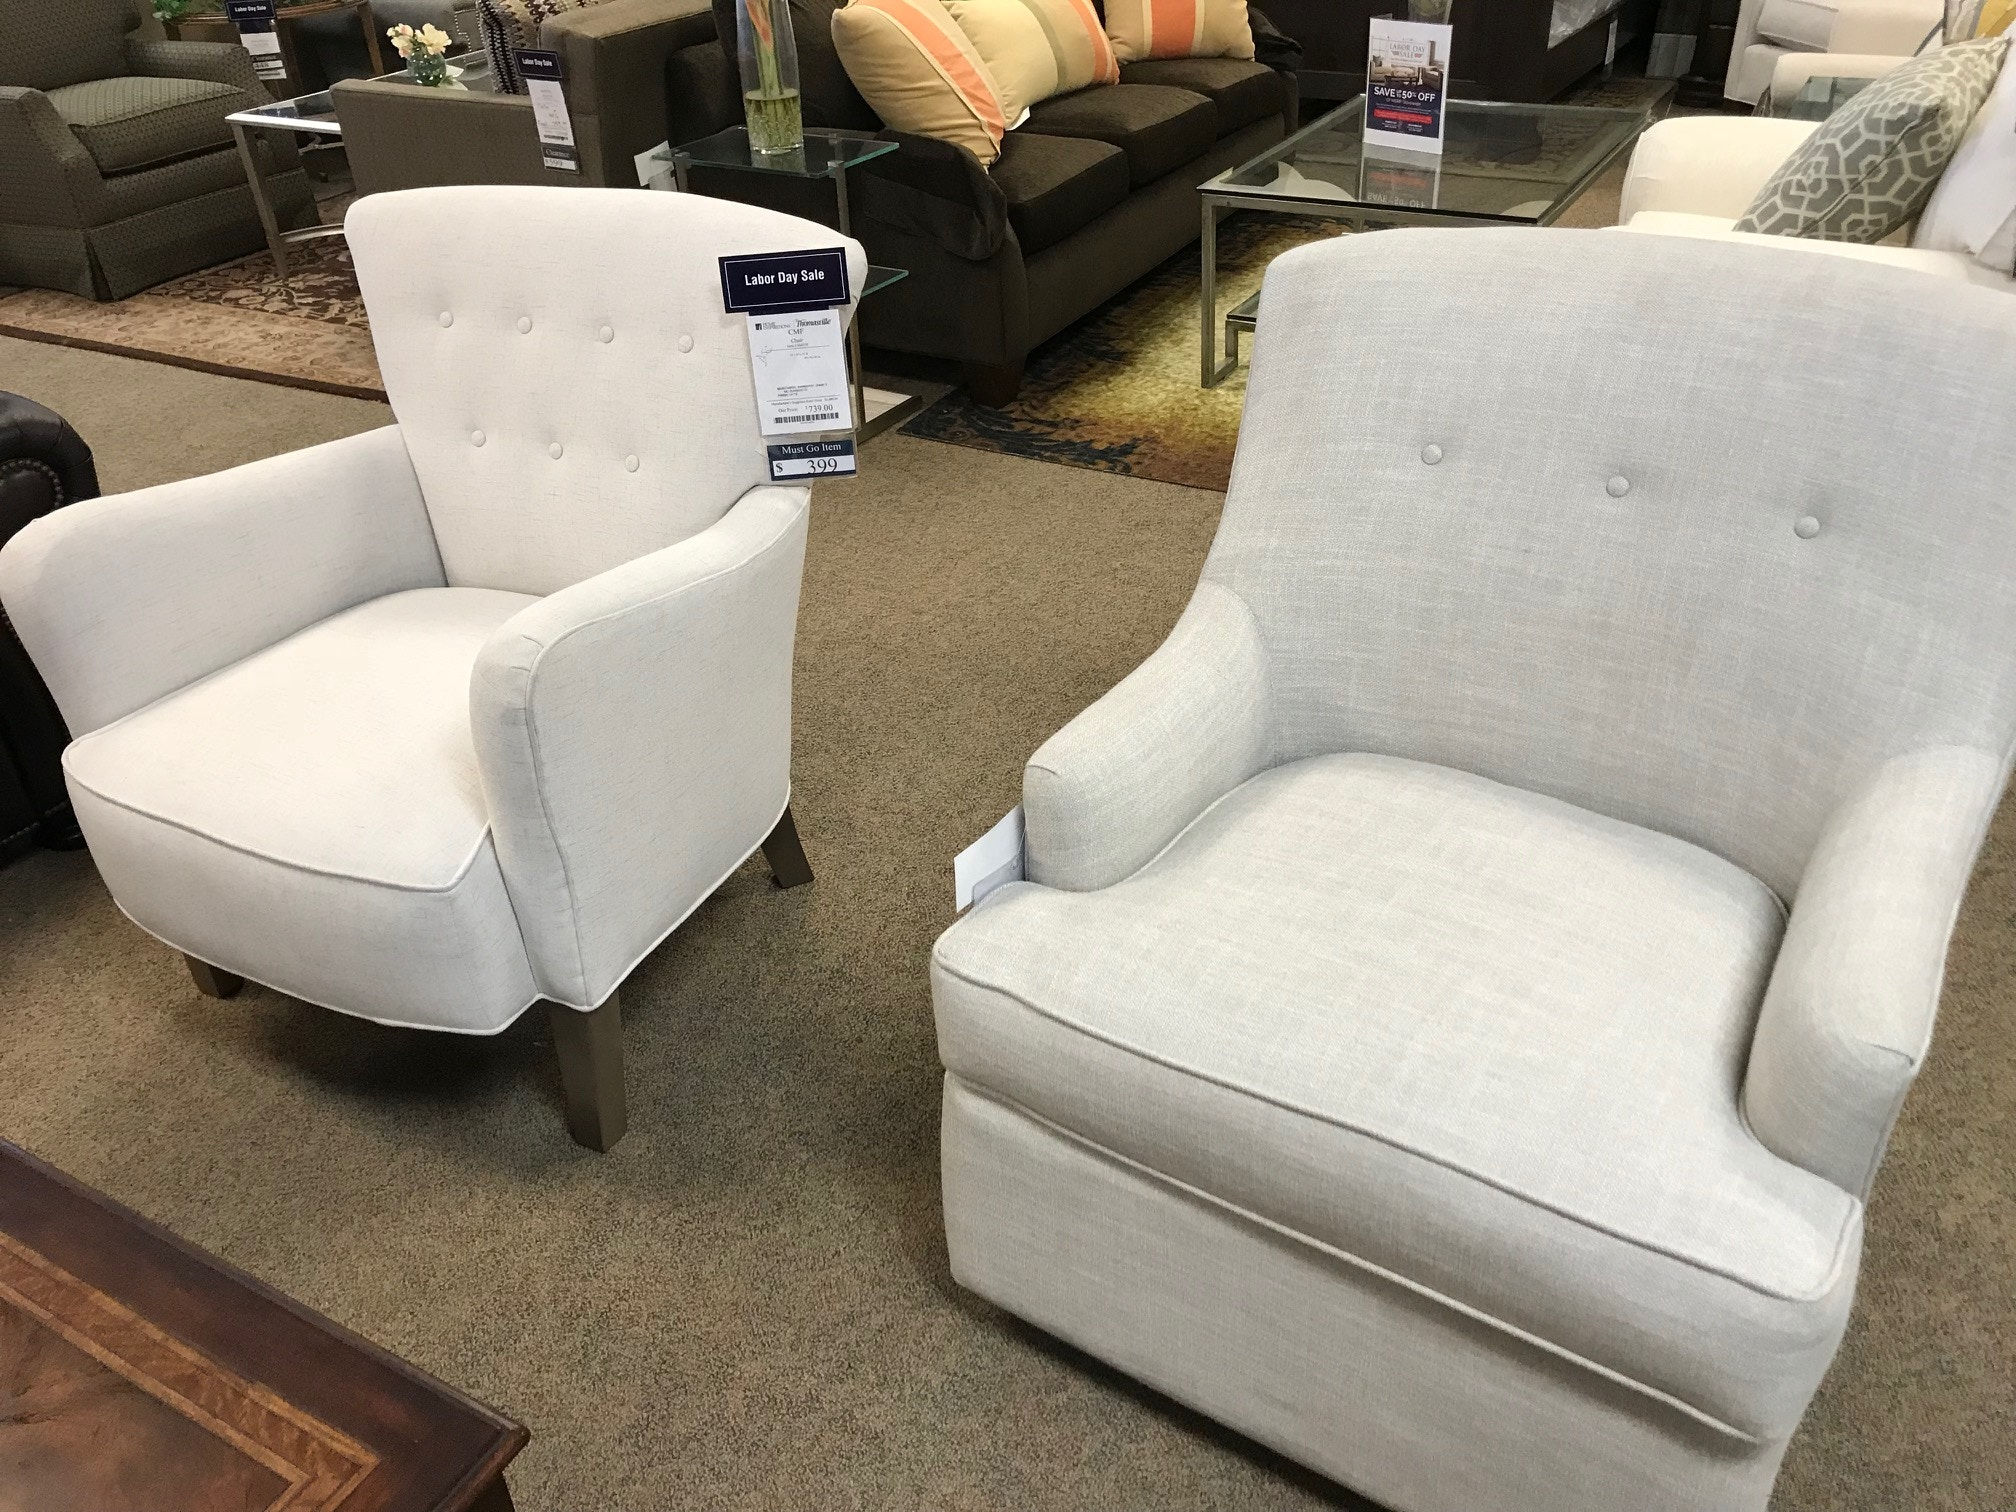 accent chairs for living room clearance stylish high chair assorted multiple styles msrp 1089 1199 rockaway location your